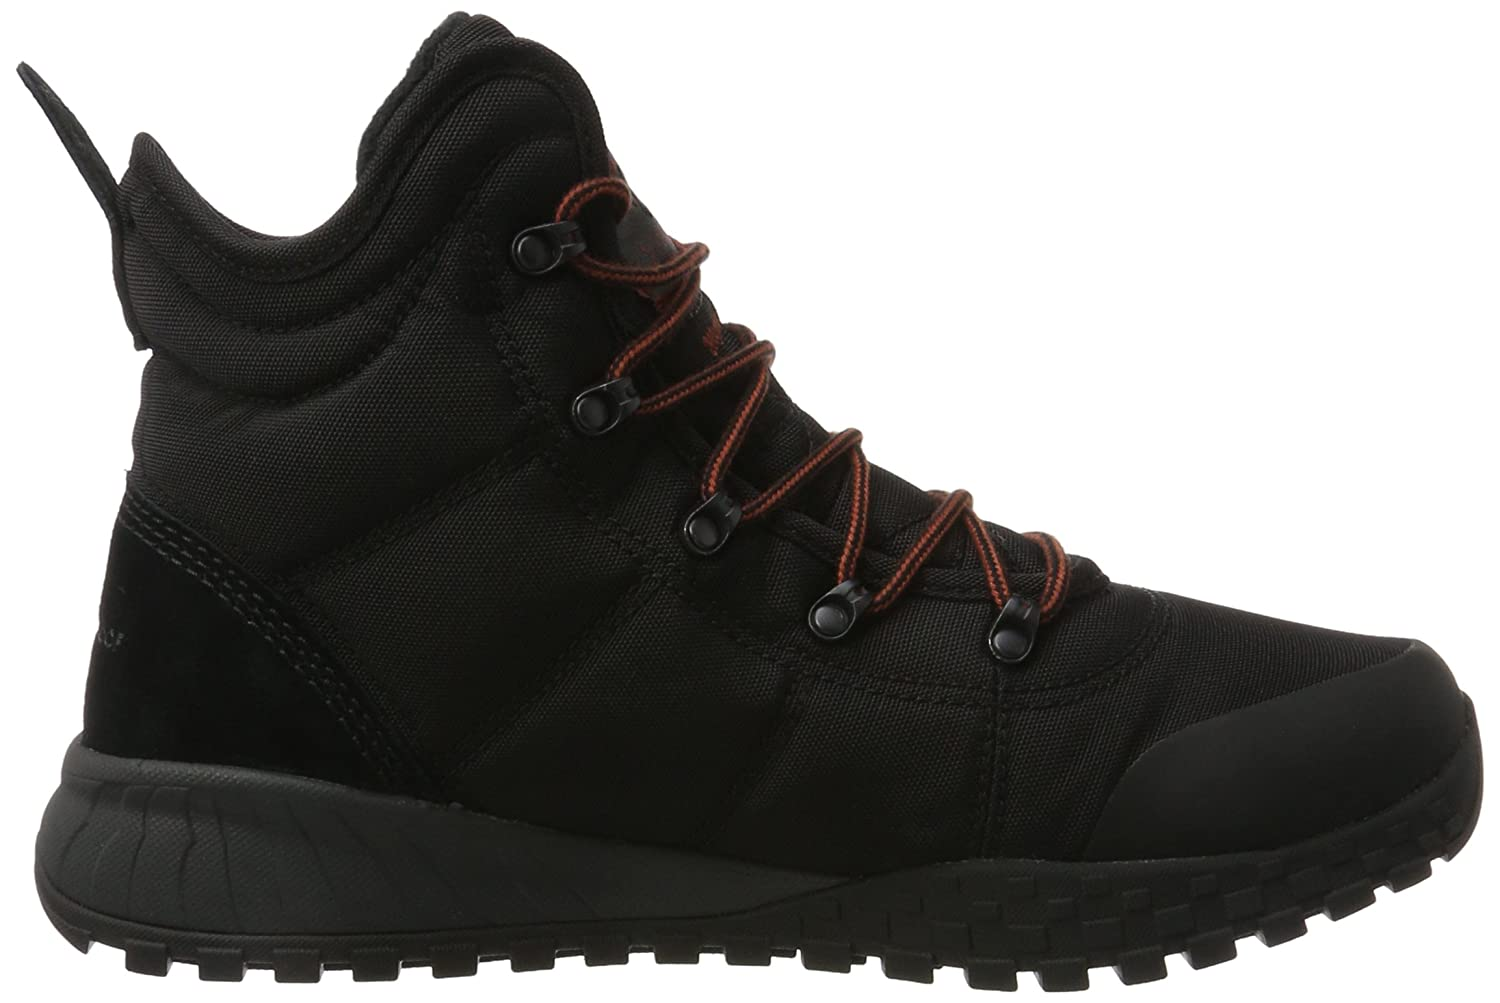 Columbia Black/Rusty Herren Fairbanks Omni-Heat Schneestiefel, Black/Rusty Columbia Schwarz (Black/ Rusty) 4c14c3